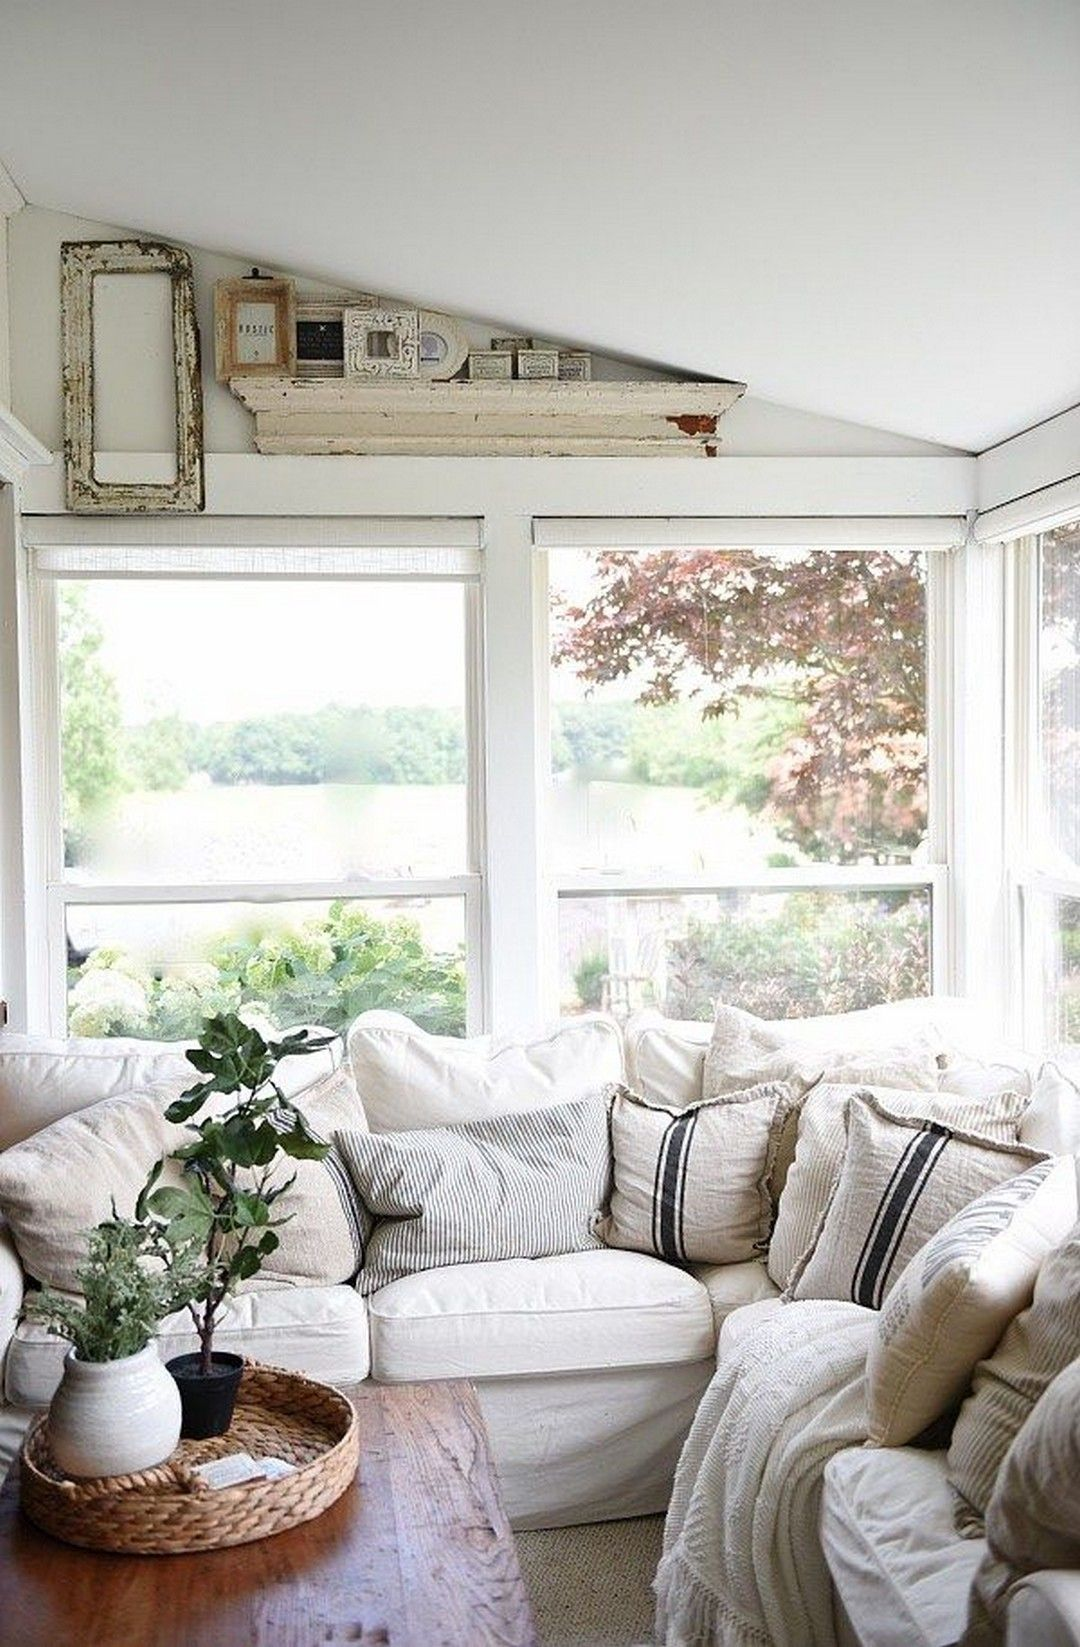 Like the open style windows and couch